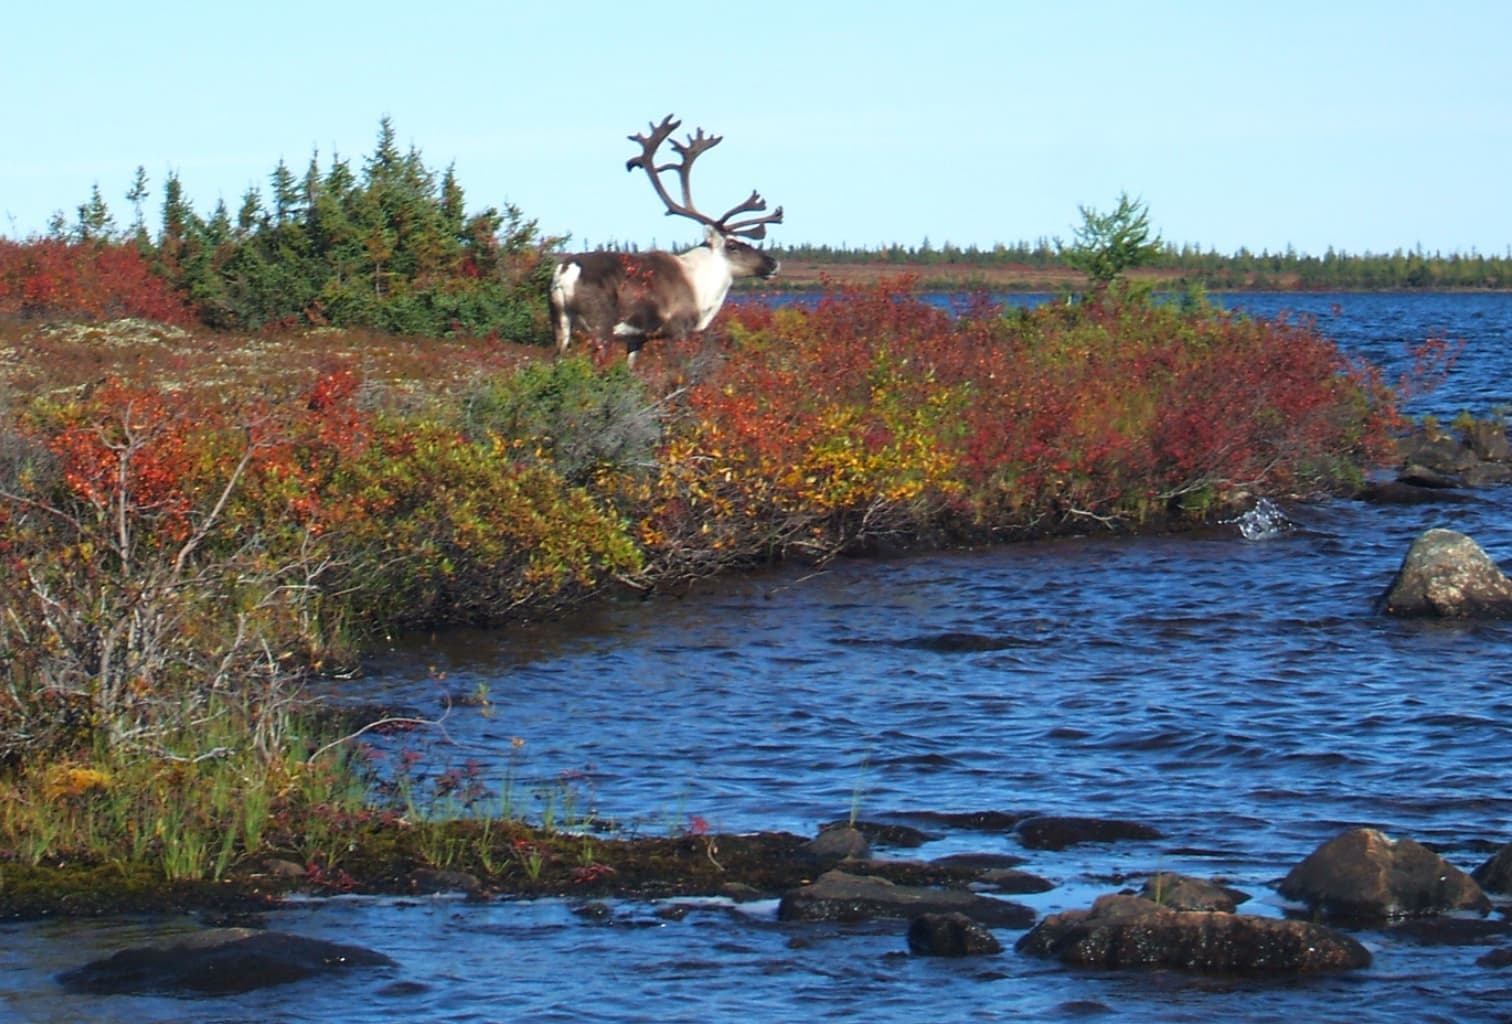 Landscape image with some fall colors with blue lake water on the right and a caribou looking out over the water